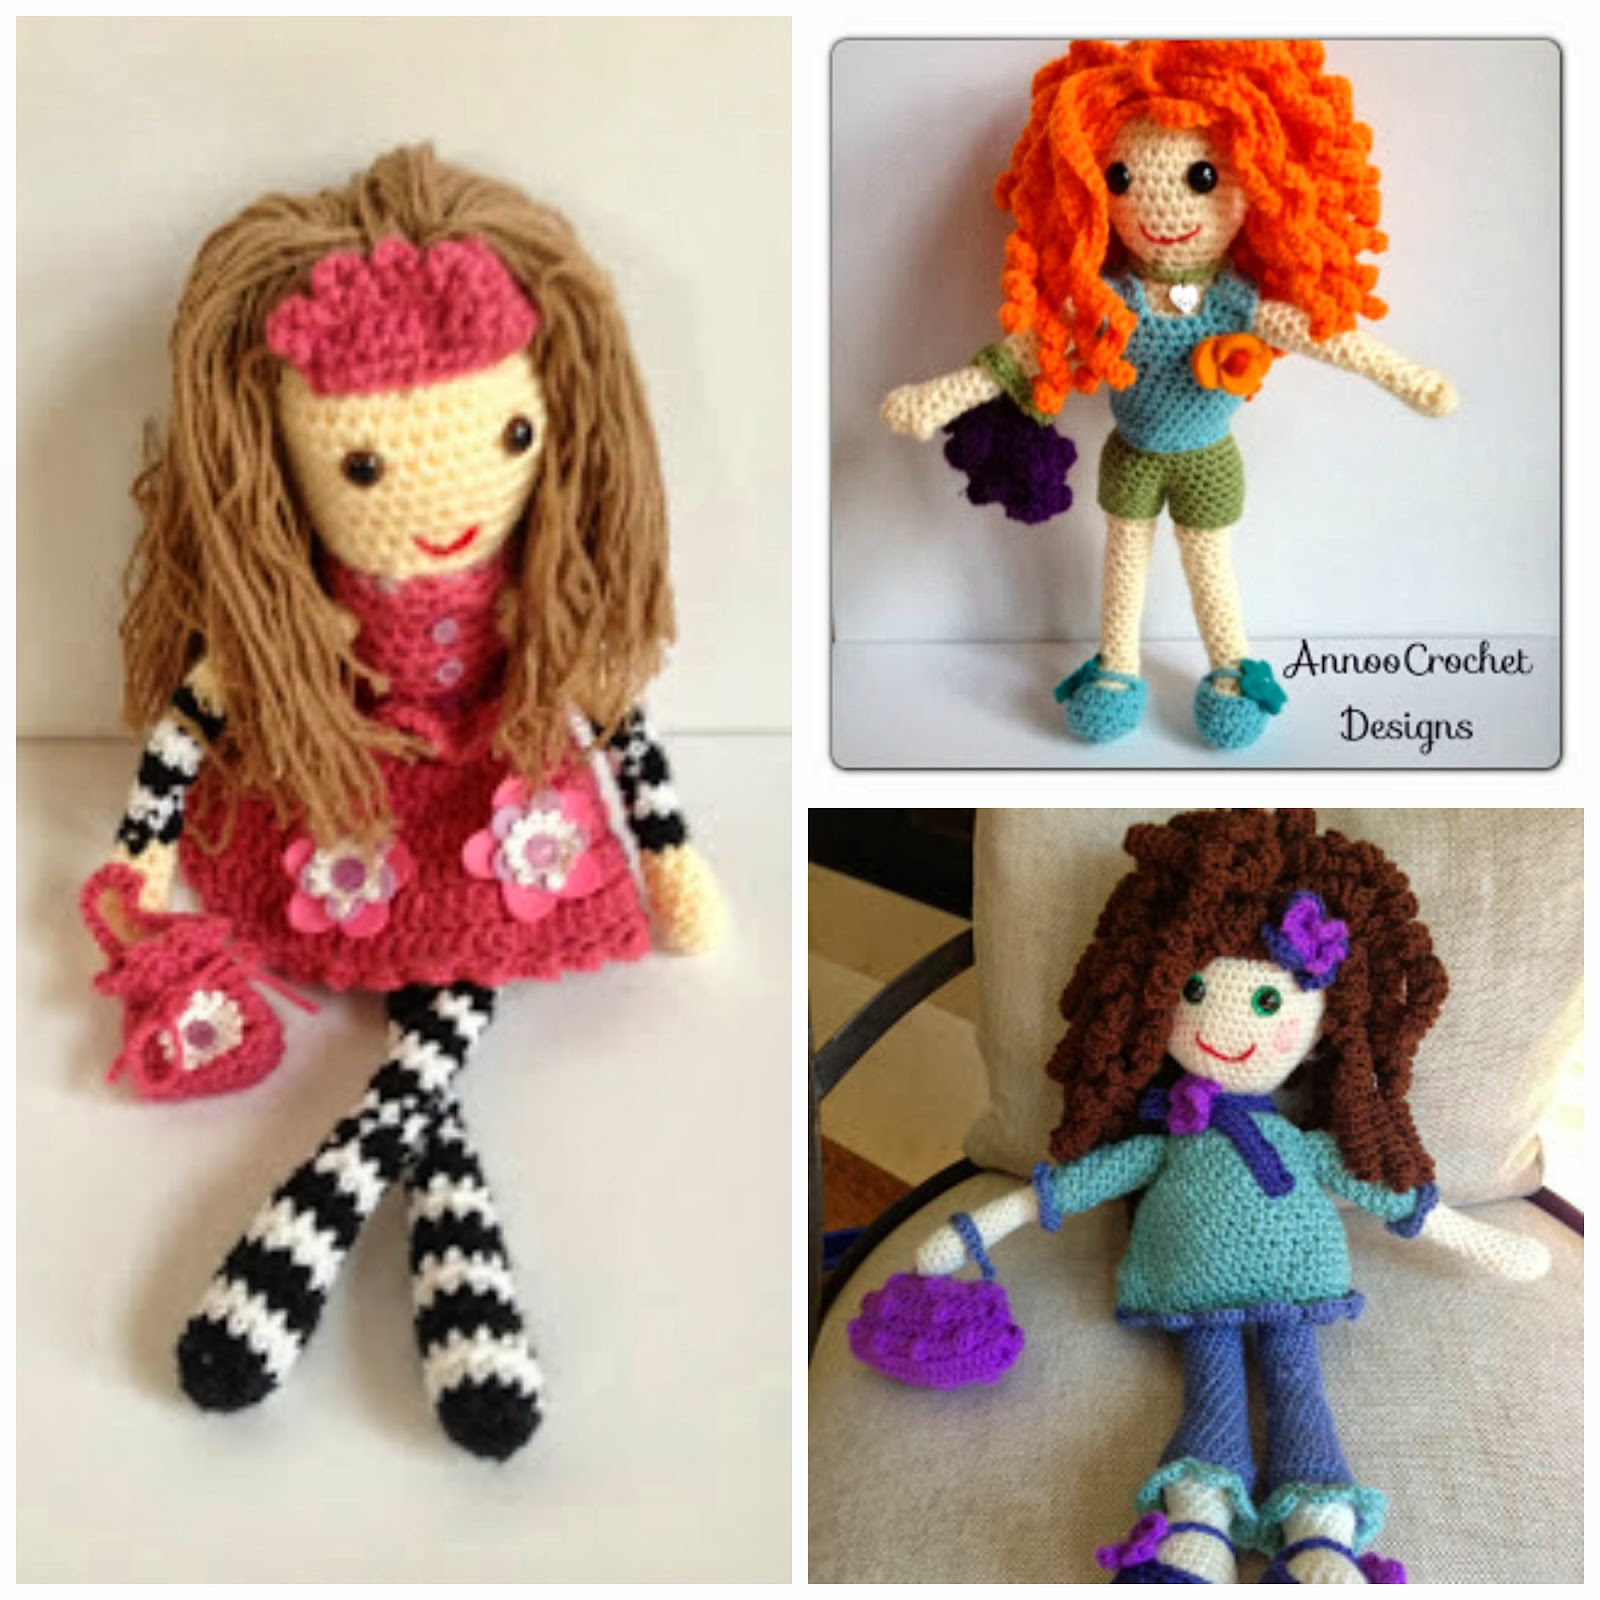 Crochet Patterns Dolls : crochet doll-crochet doll patterns-easy crochet doll patterns-free ...